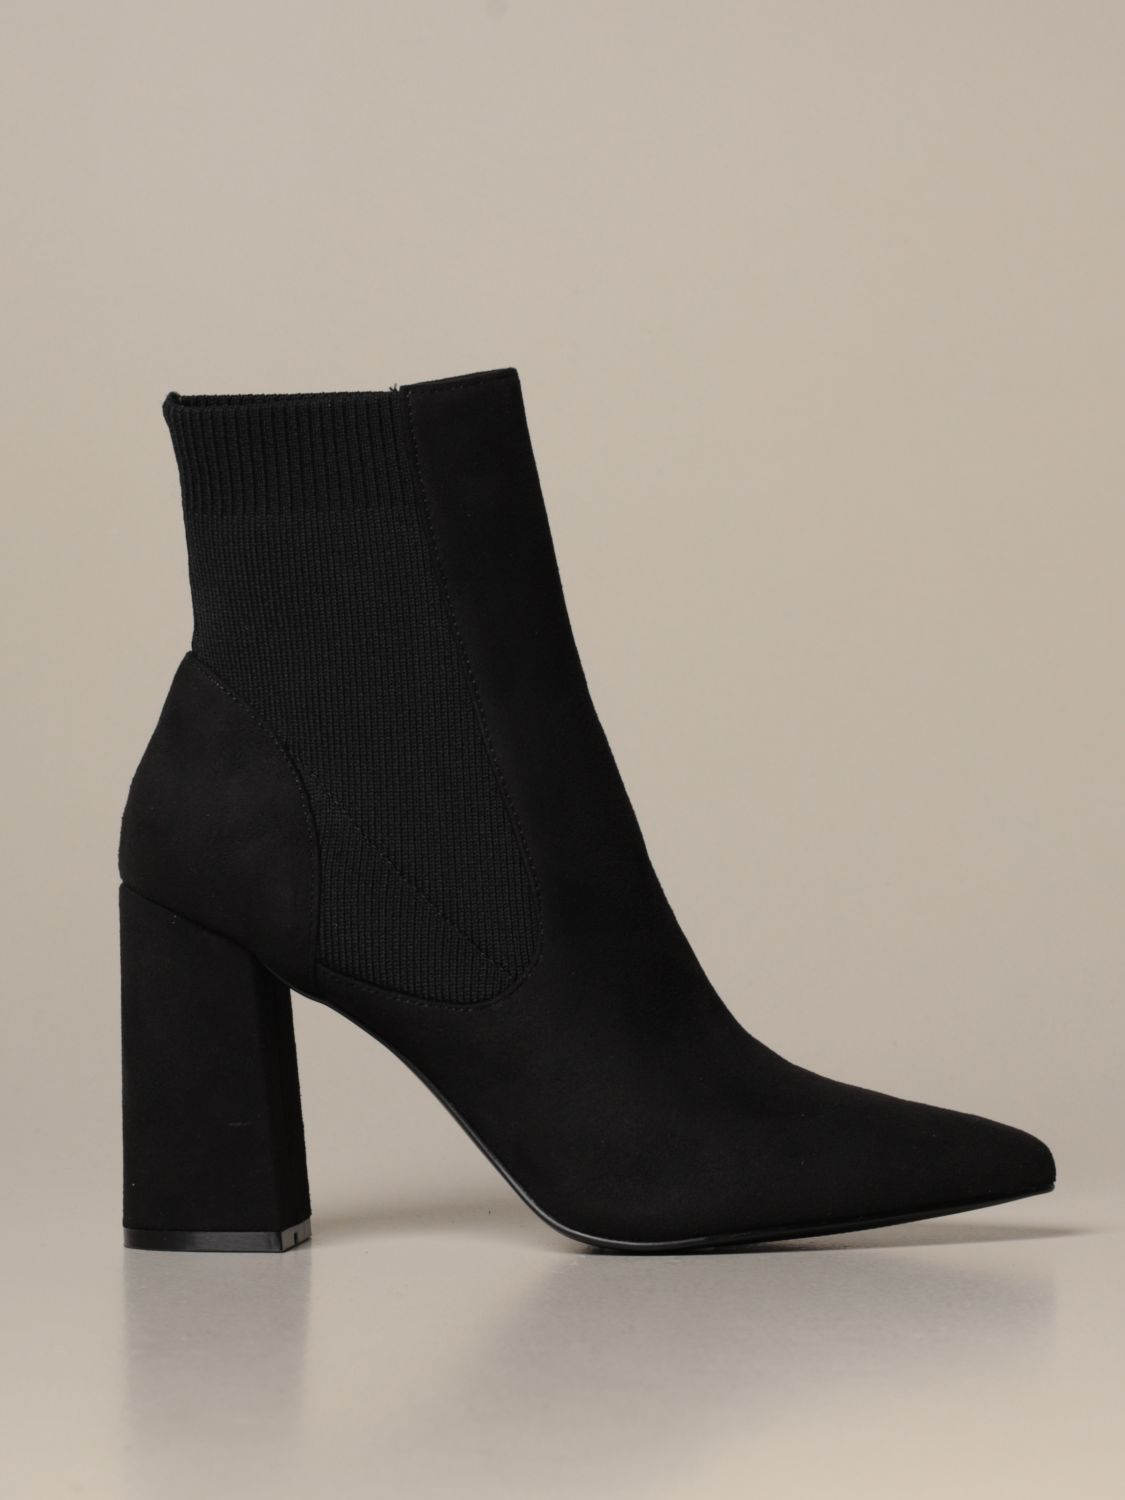 Reesa Steve Madden ankle boots in